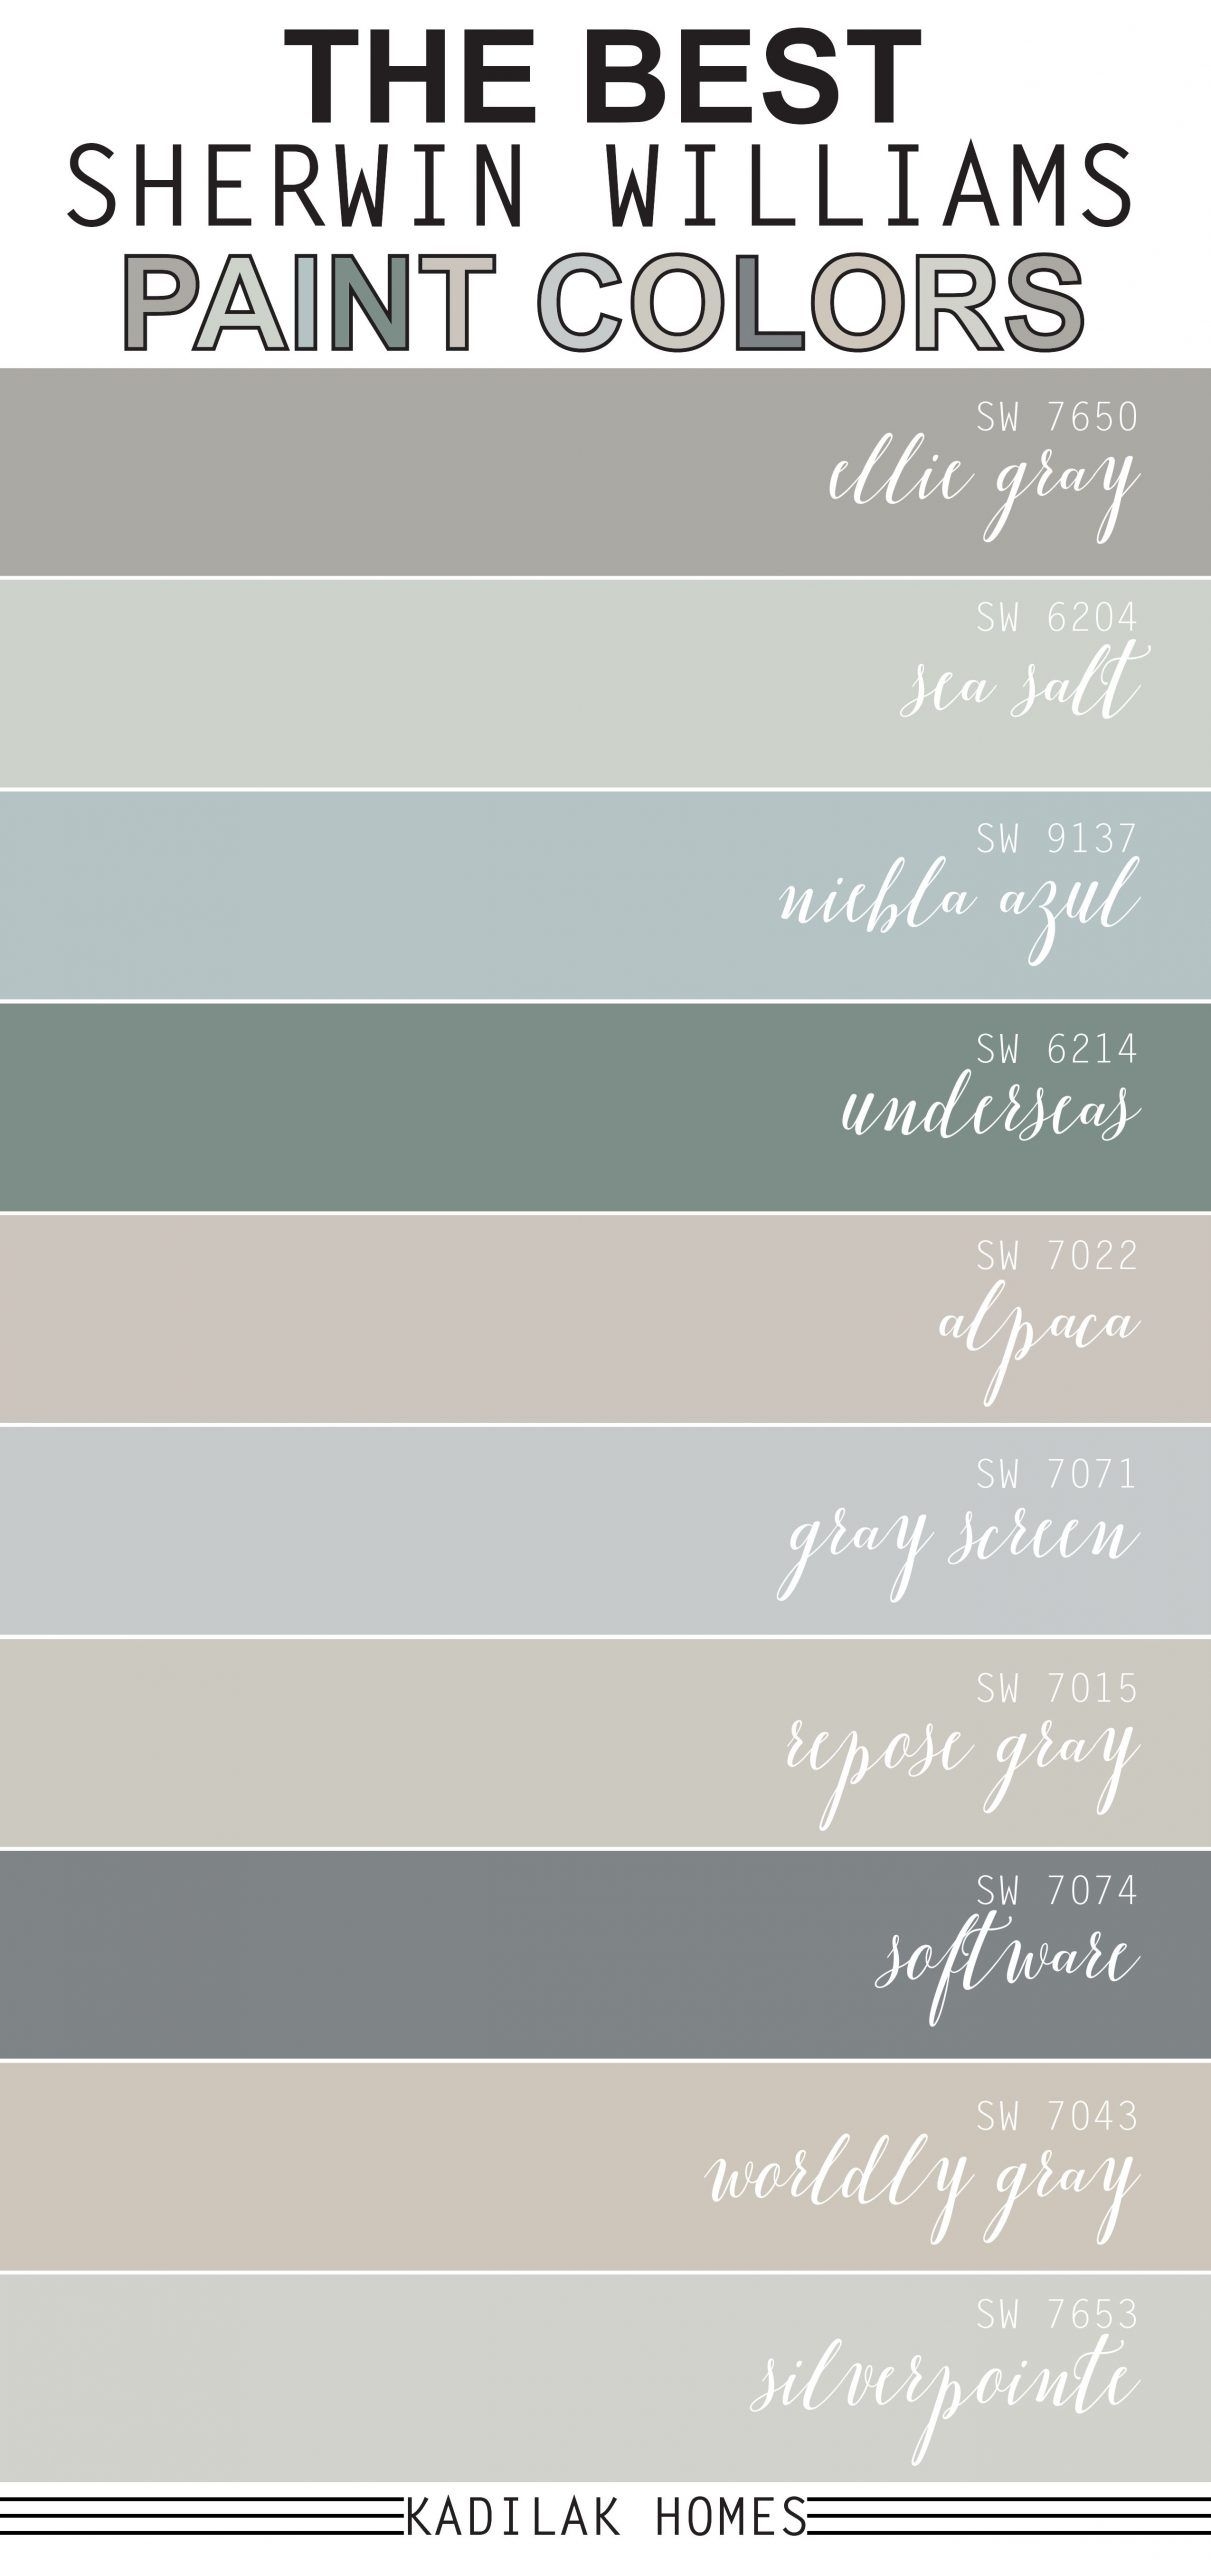 The Best Sherwin Williams Paint Colors In 2020 Malfarben Zimmer